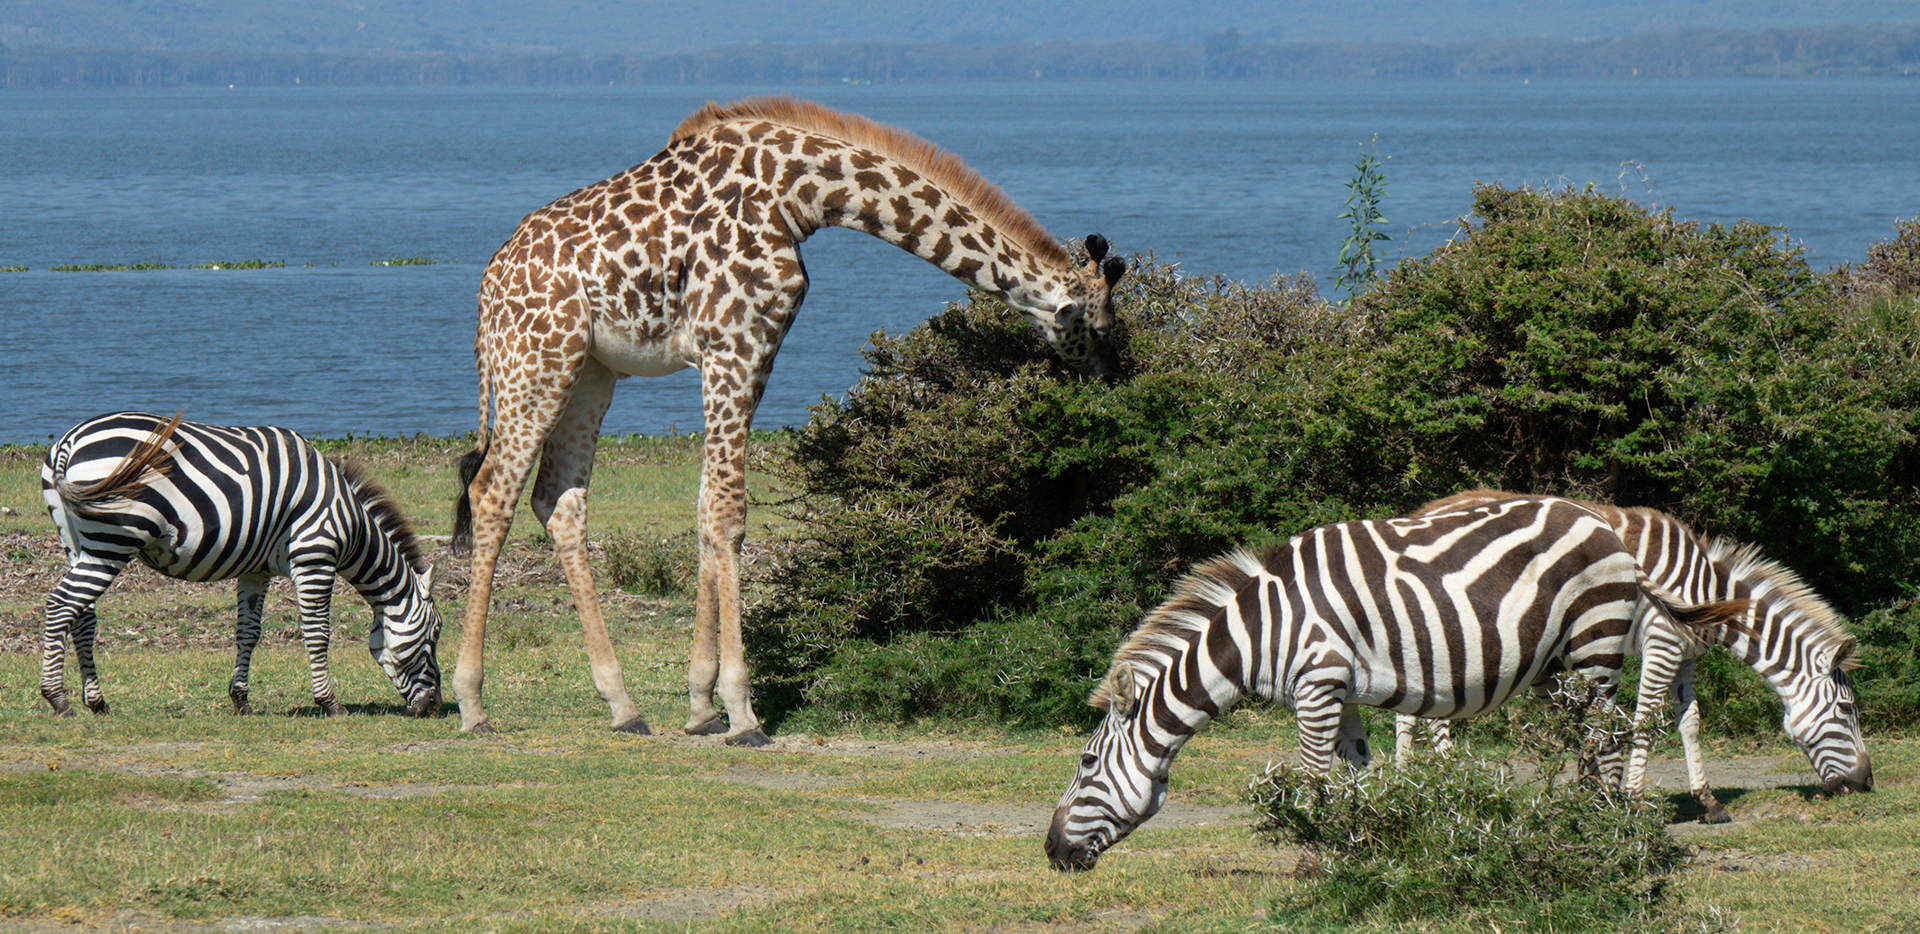 Maasai Giraffe And Zebras